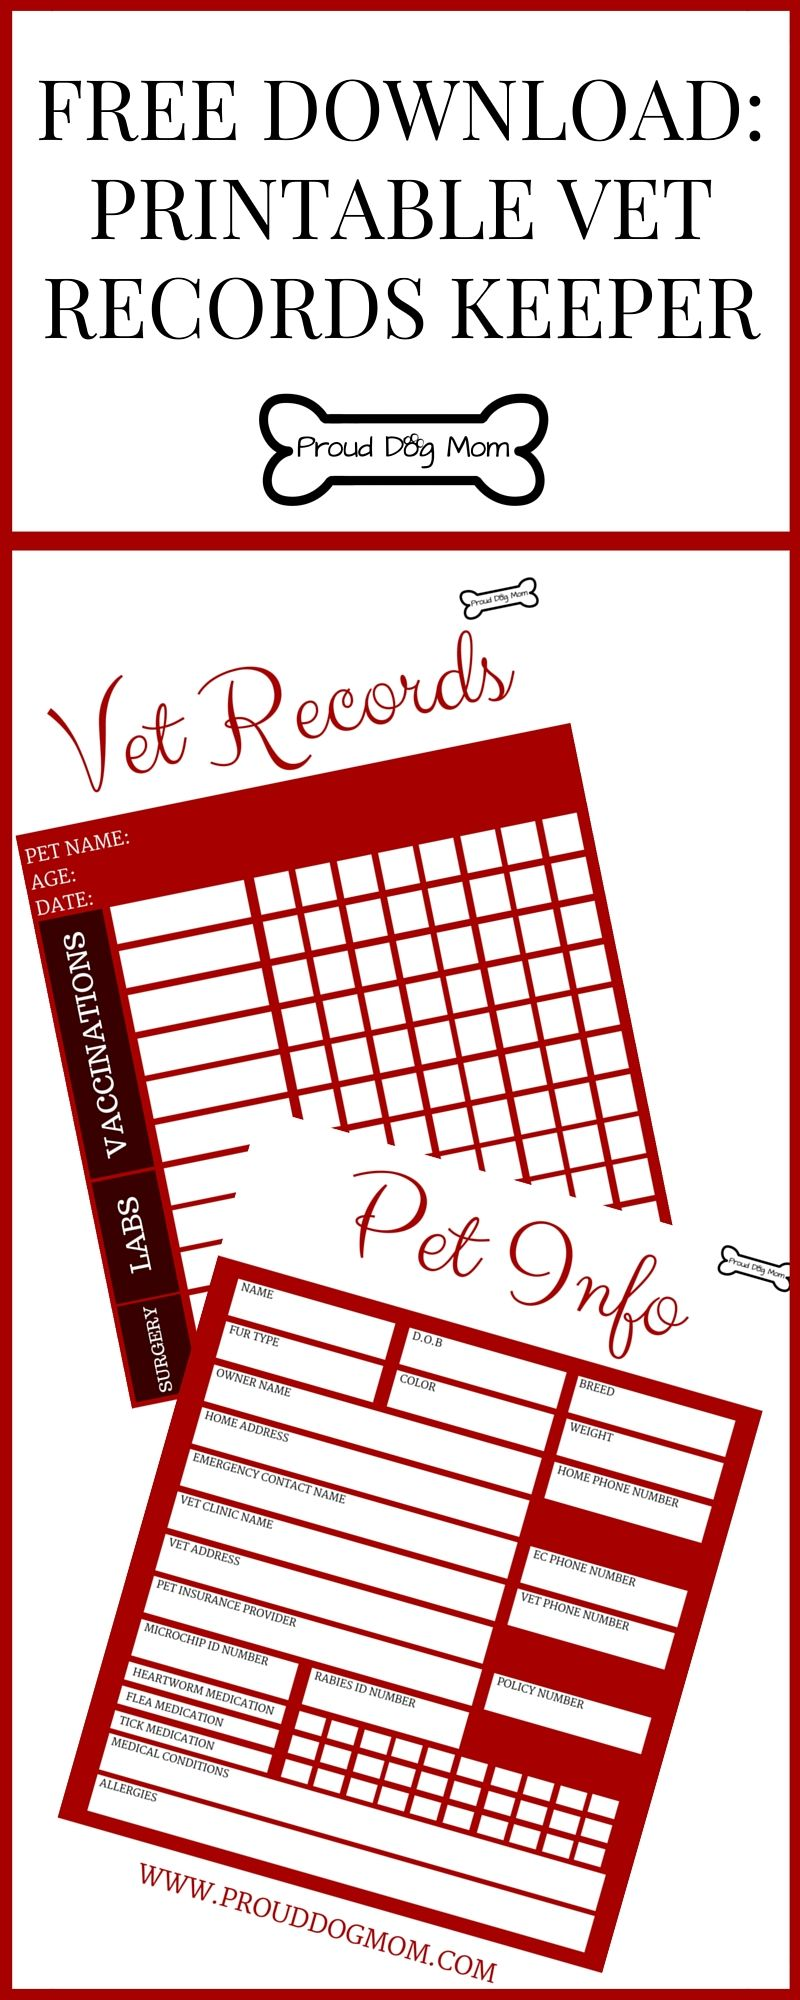 image regarding Dog Health Records Printable called Absolutely free Down load: Printable Vet Documents Keeper Animals Dog